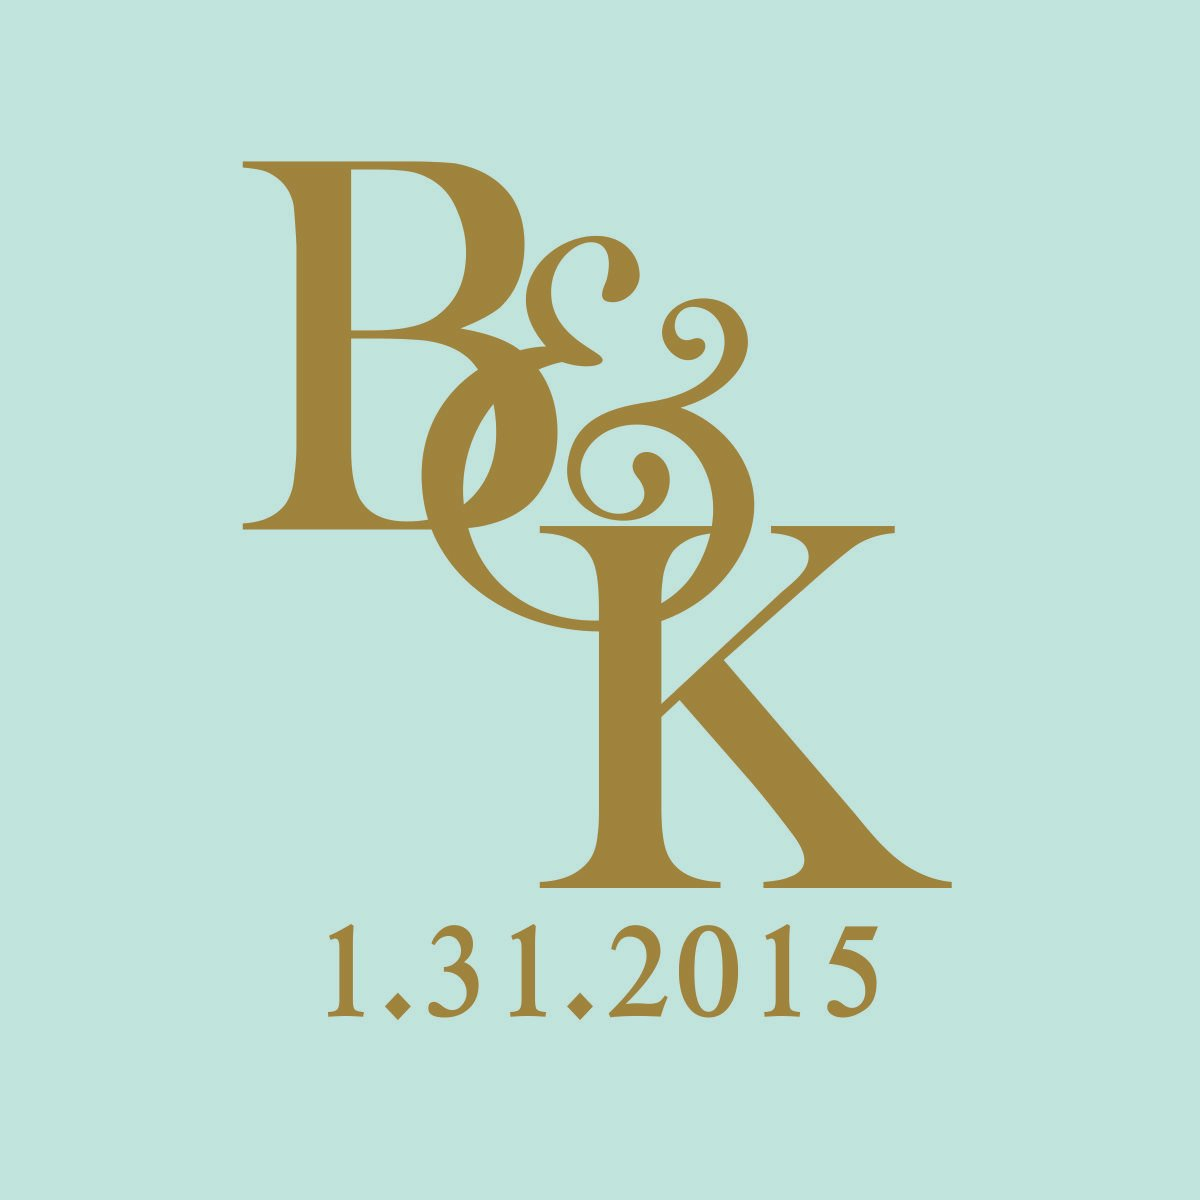 Bride & Groom Intertwined Initials with Wedding Date Vinyl Decals - Set of TWO for Cornhole Game